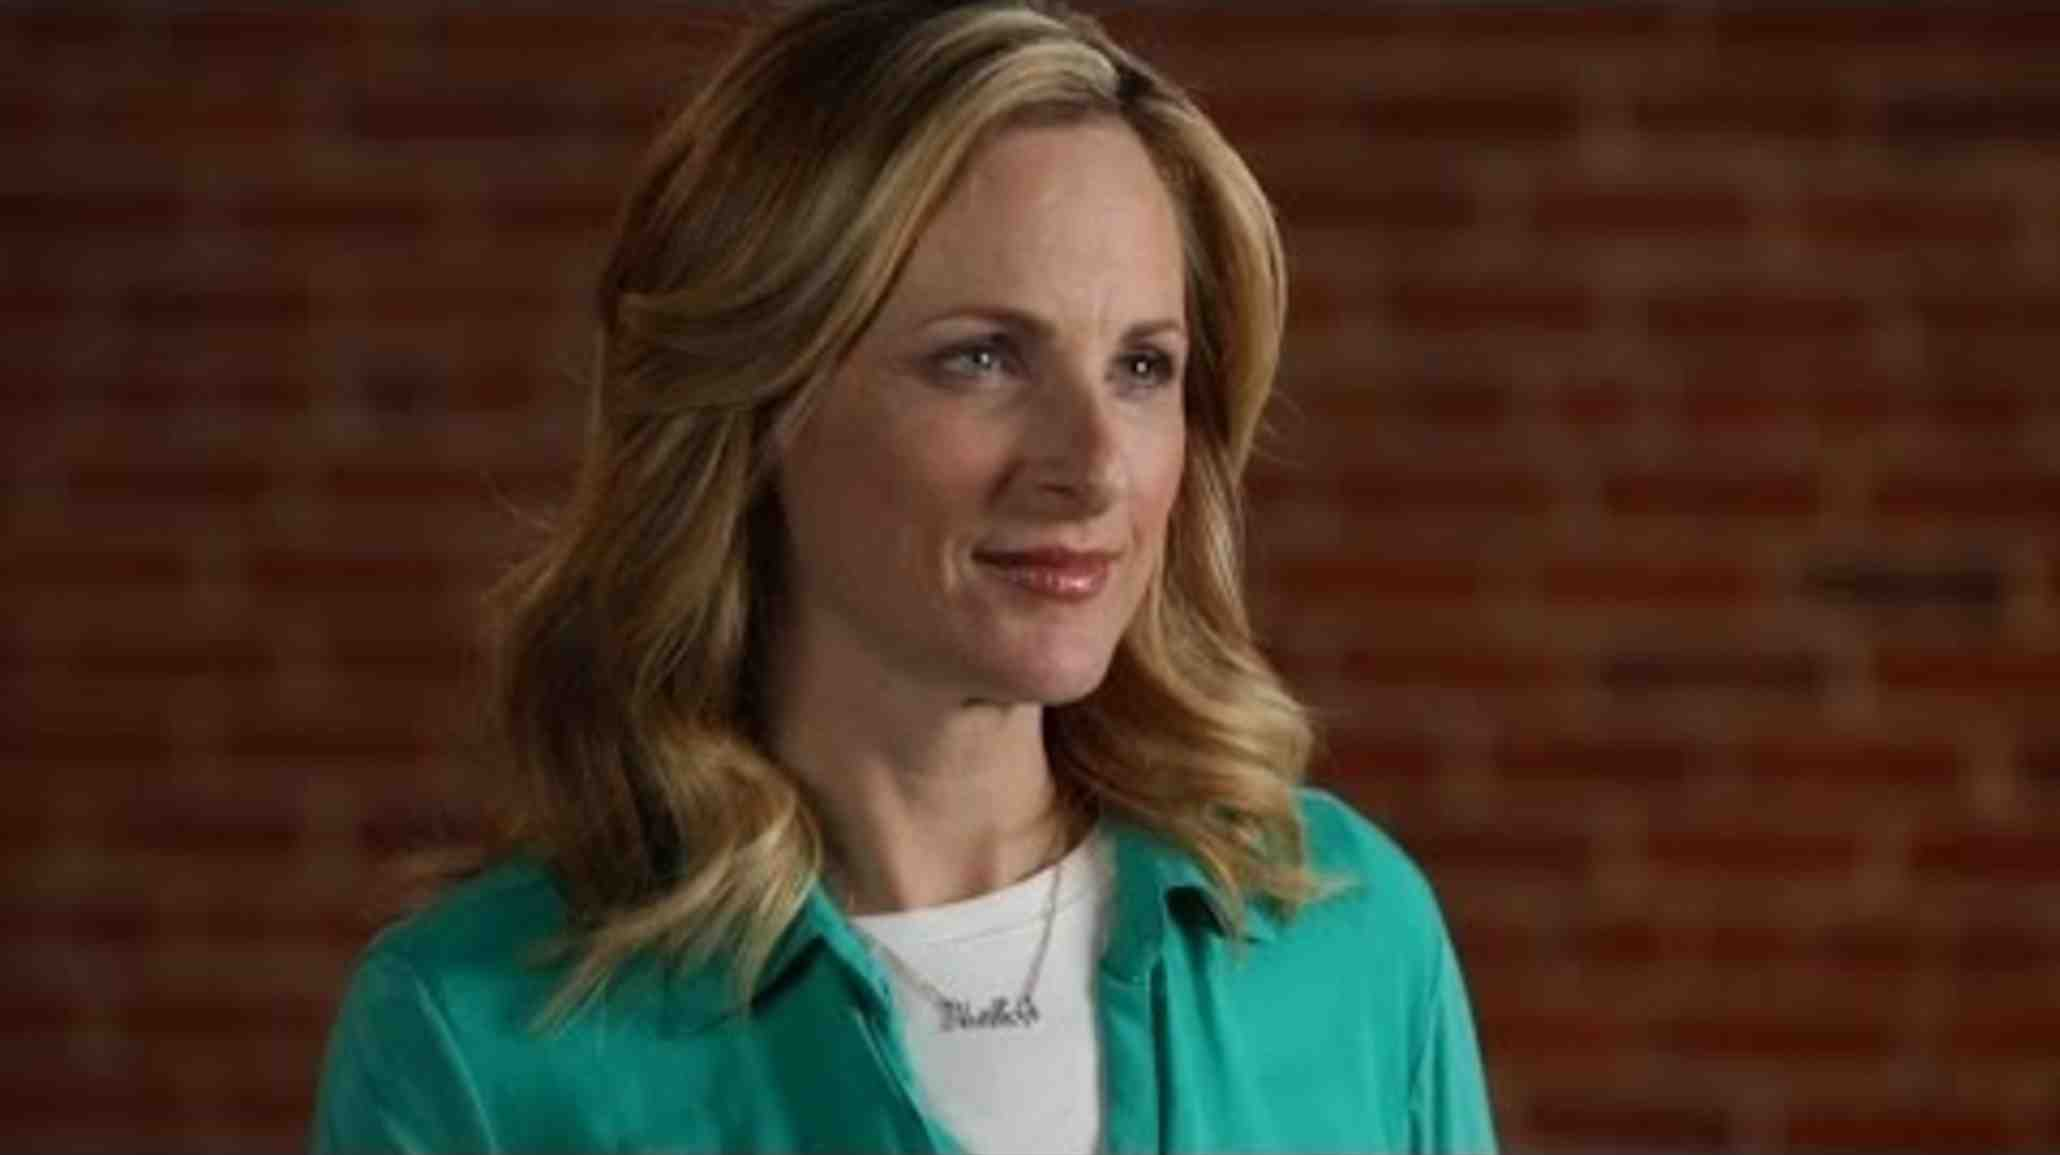 Marlee Matlin On Deaf And Police Interaction | American Civil